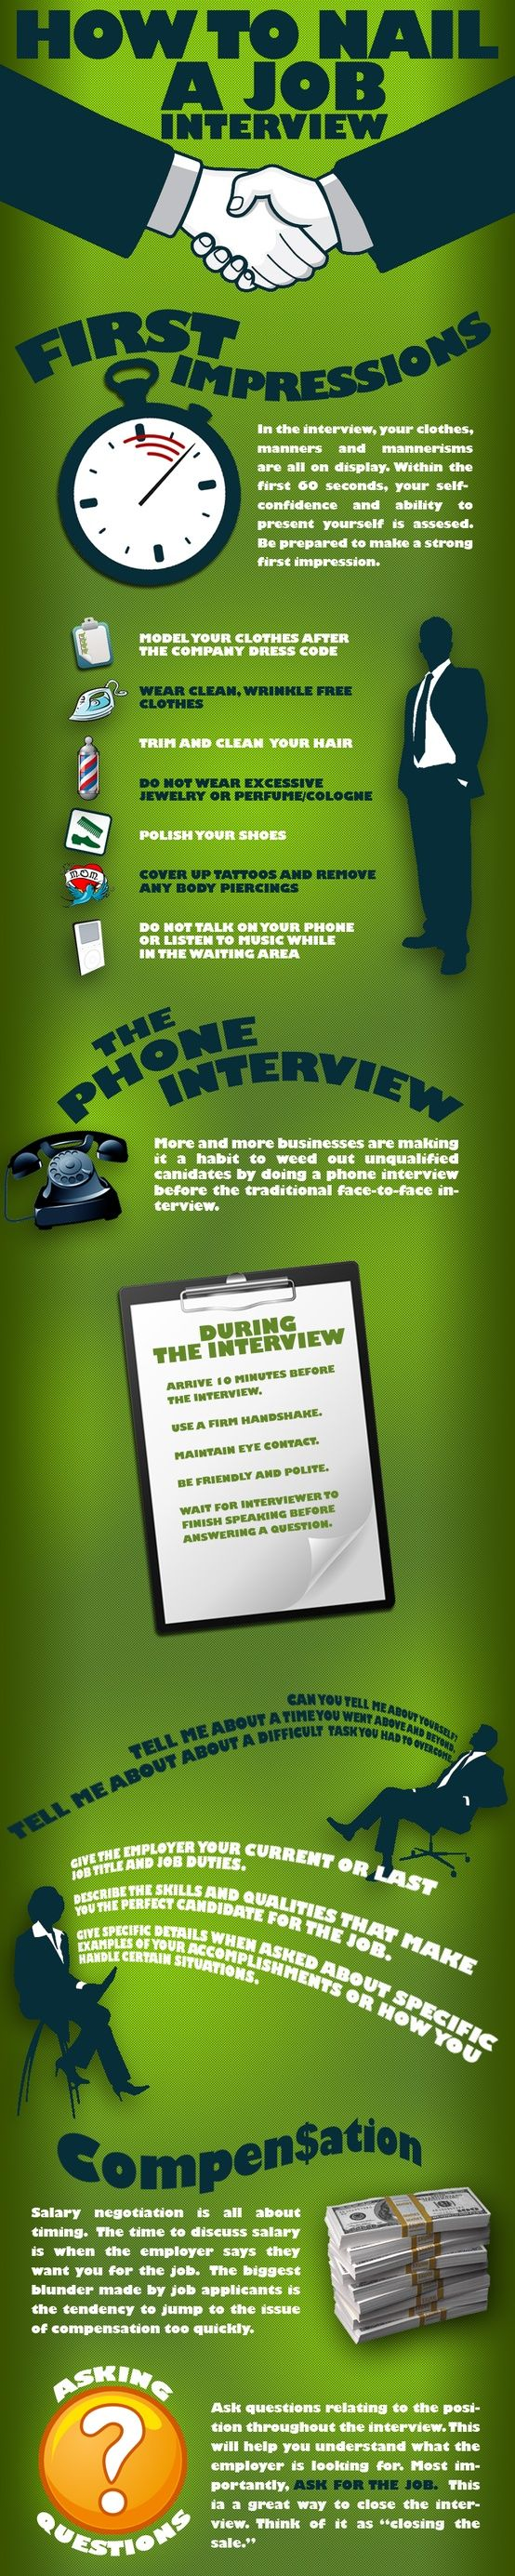 infographic   how to interview - top tips for acing a job interview  infographic